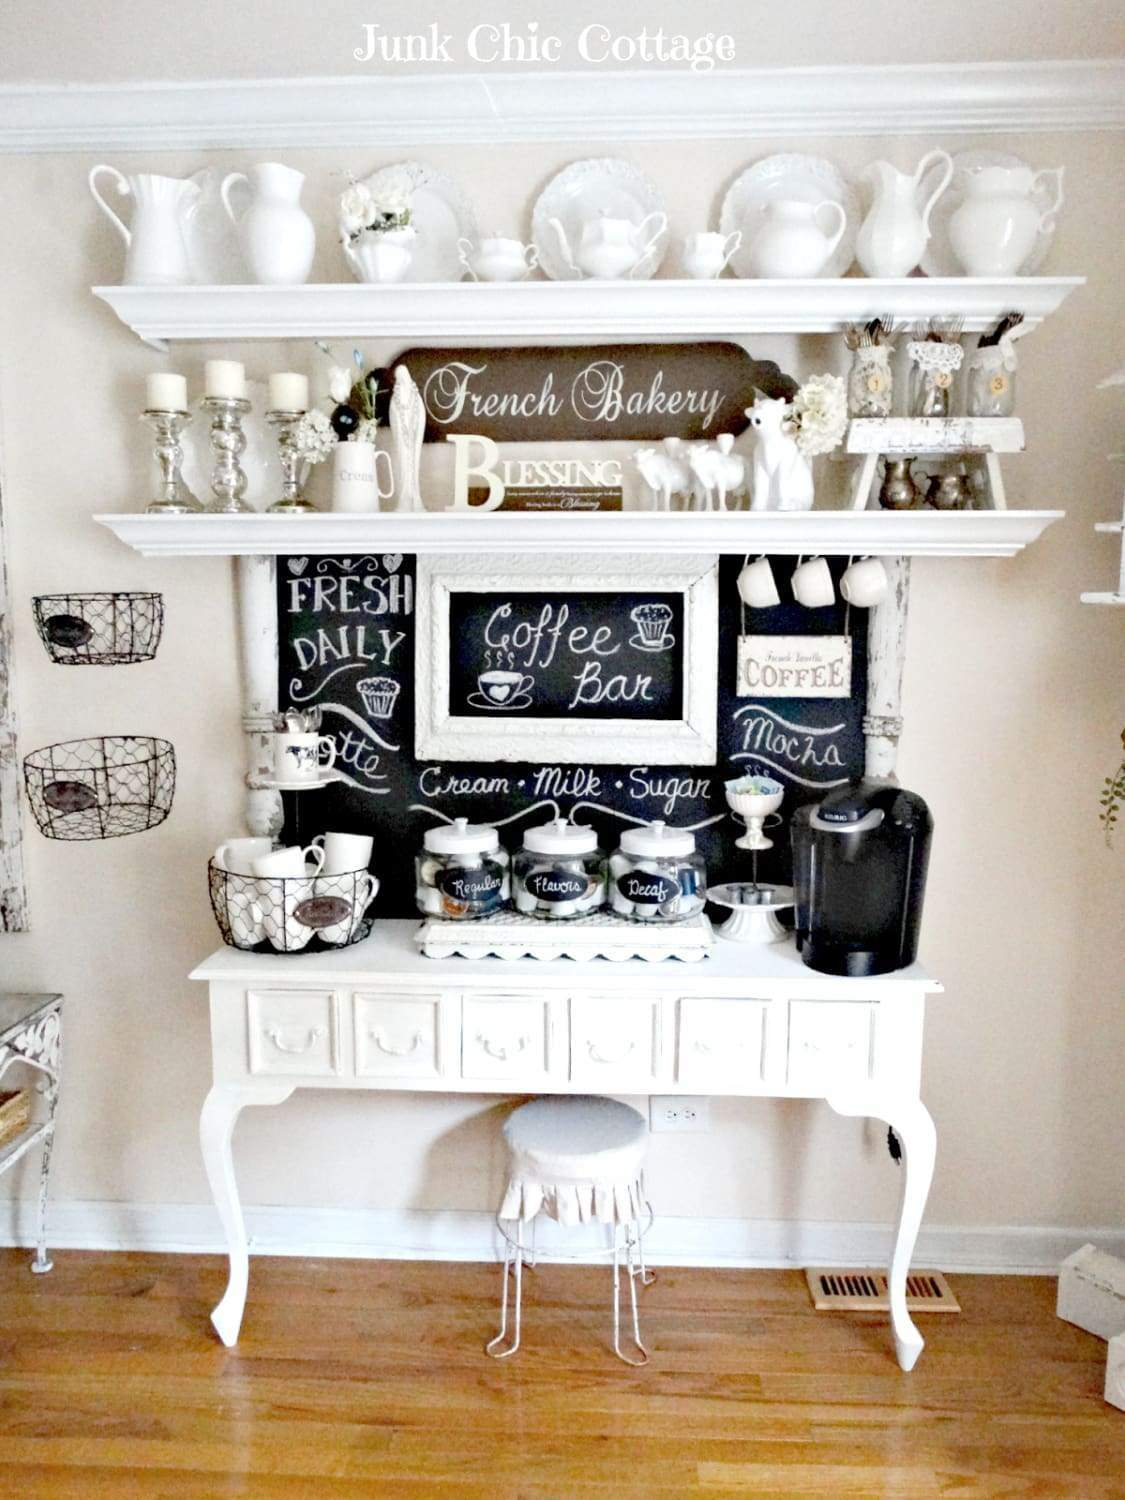 Want to recreate this beautiful French country coffee bar? Check out the DIY instructions here